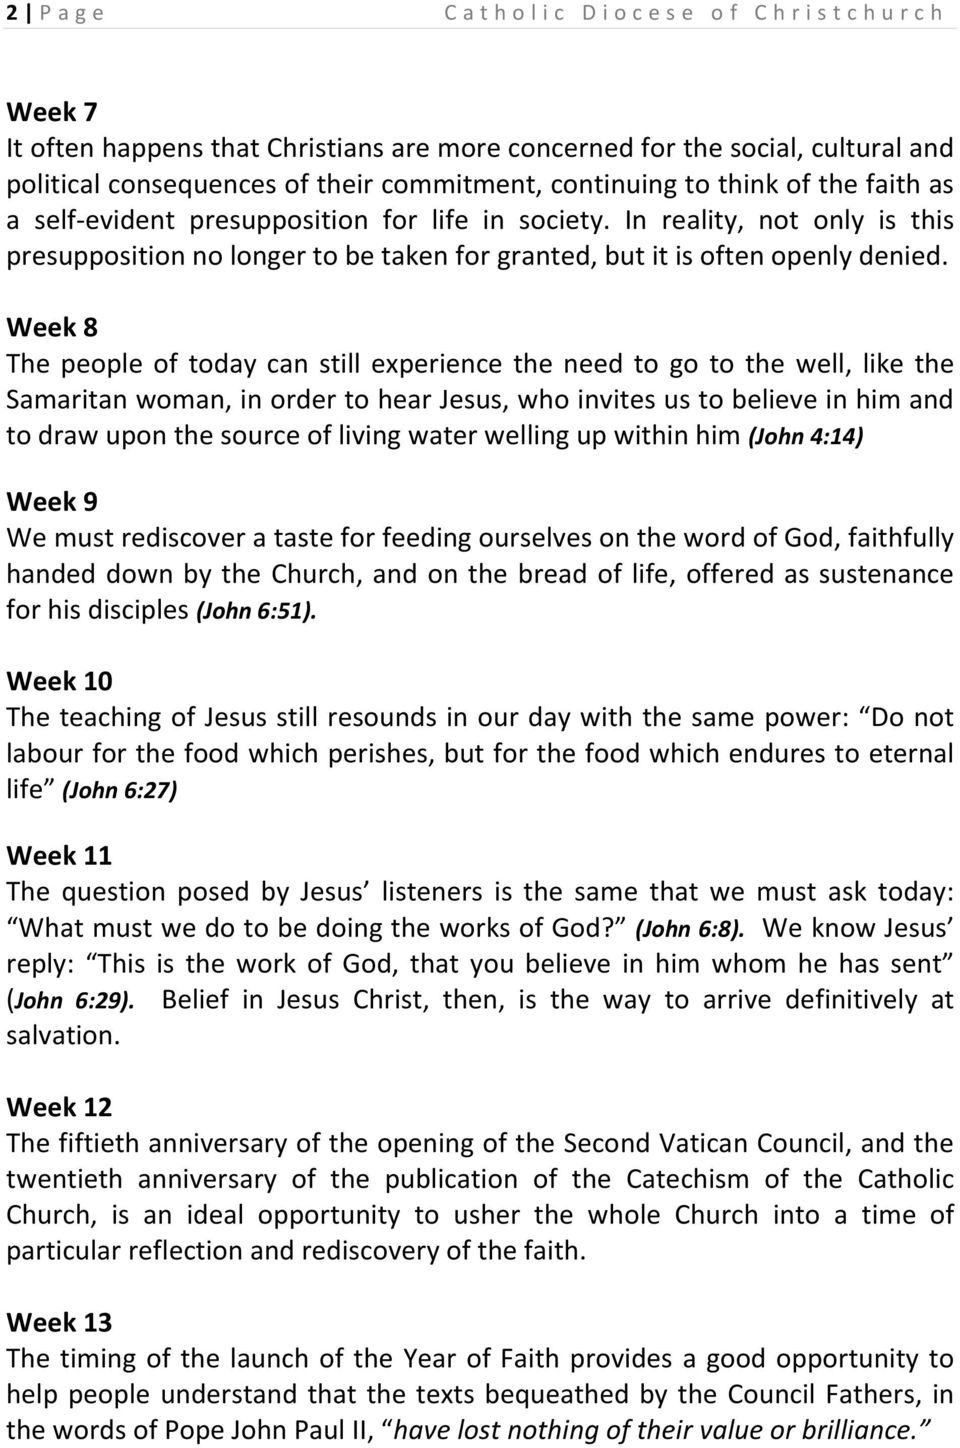 Week 8 The people of today can still experience the need to go to the well, like the Samaritan woman, in order to hear Jesus, who invites us to believe in him and to draw upon the source of living